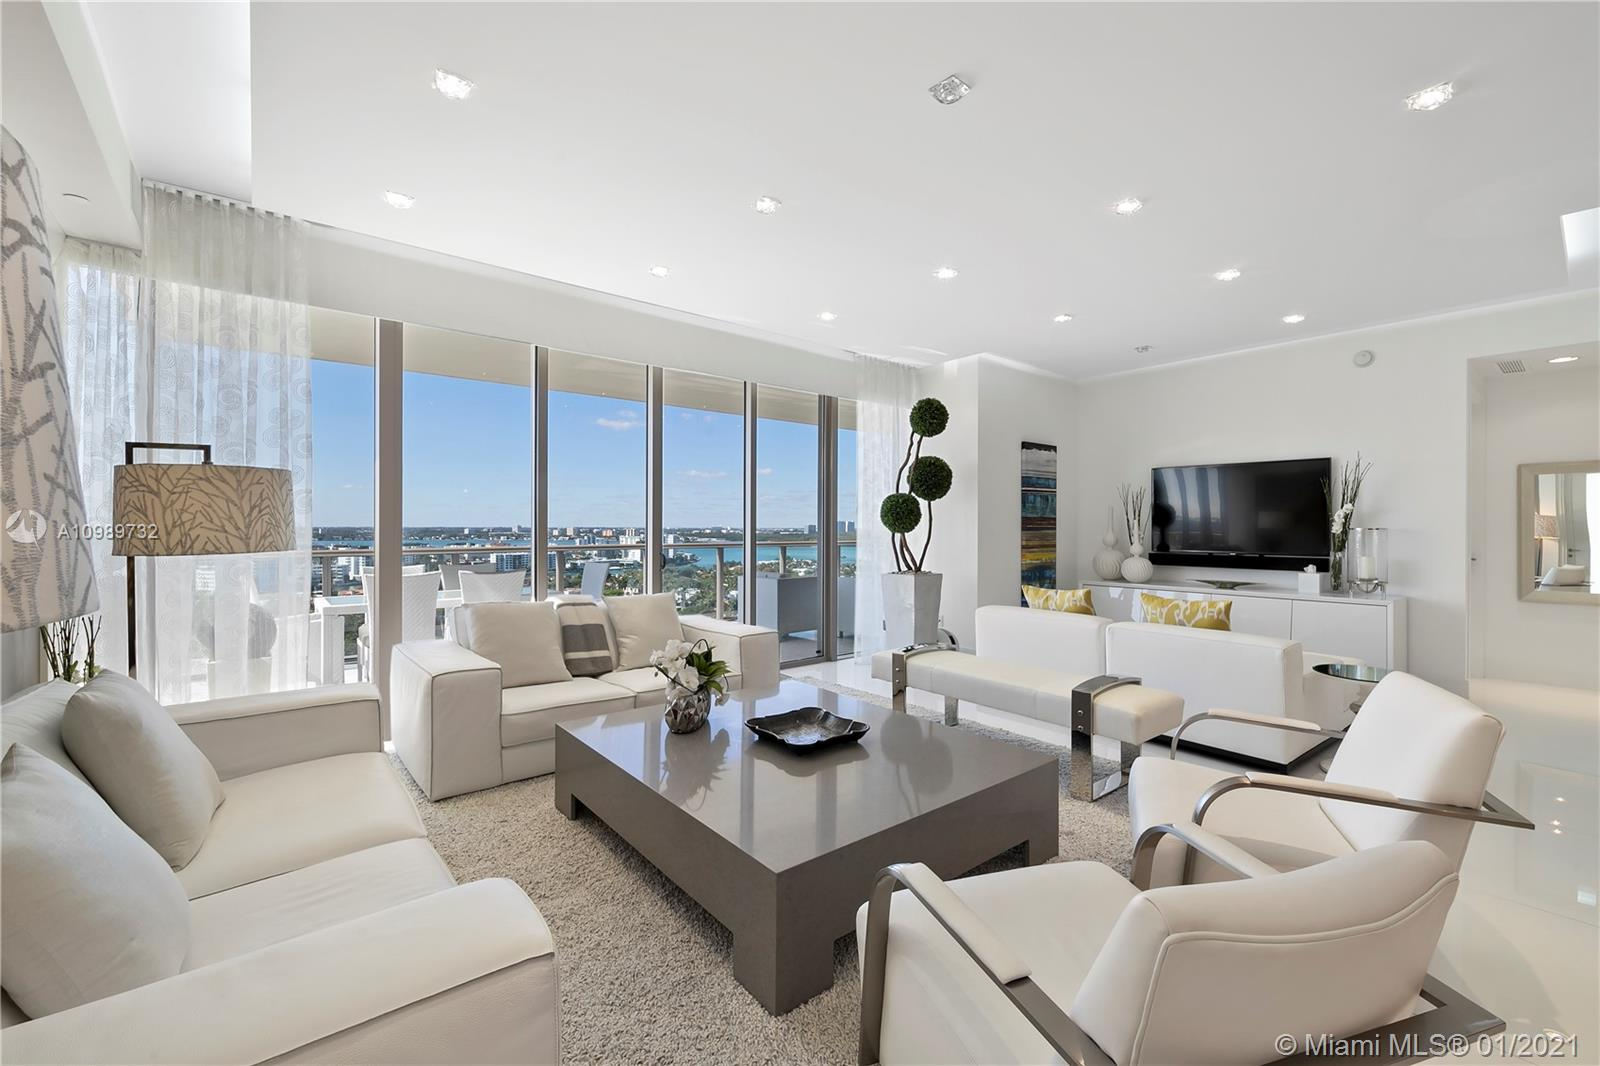 Luxurious lifestyle offered in this immaculately finished 2 Bed/2.5 Bath corner residence in high-end North tower. Enjoy world class amenities and exceptional location across from the Bal Harbour Shops. This residence comes fully furnished offering 1,599 SF of living space and 455 SF corner terrace. Spectacular views of the city and water indoors and out. Finishes include beautiful marble floors, European-imported cabinetry, high end appliances including Wolff gas stove, Meile espresso machine, and wine refrigerator. Window treatments throughout and custom built-in closets in both bedrooms. St. Regis- Bal Harbour offers 5-star amenities including 24-hour concierge, room service, oceanfront cabanas, 4 pools, 3 restaurants, 14,000 SF Remede Spa and valet service.